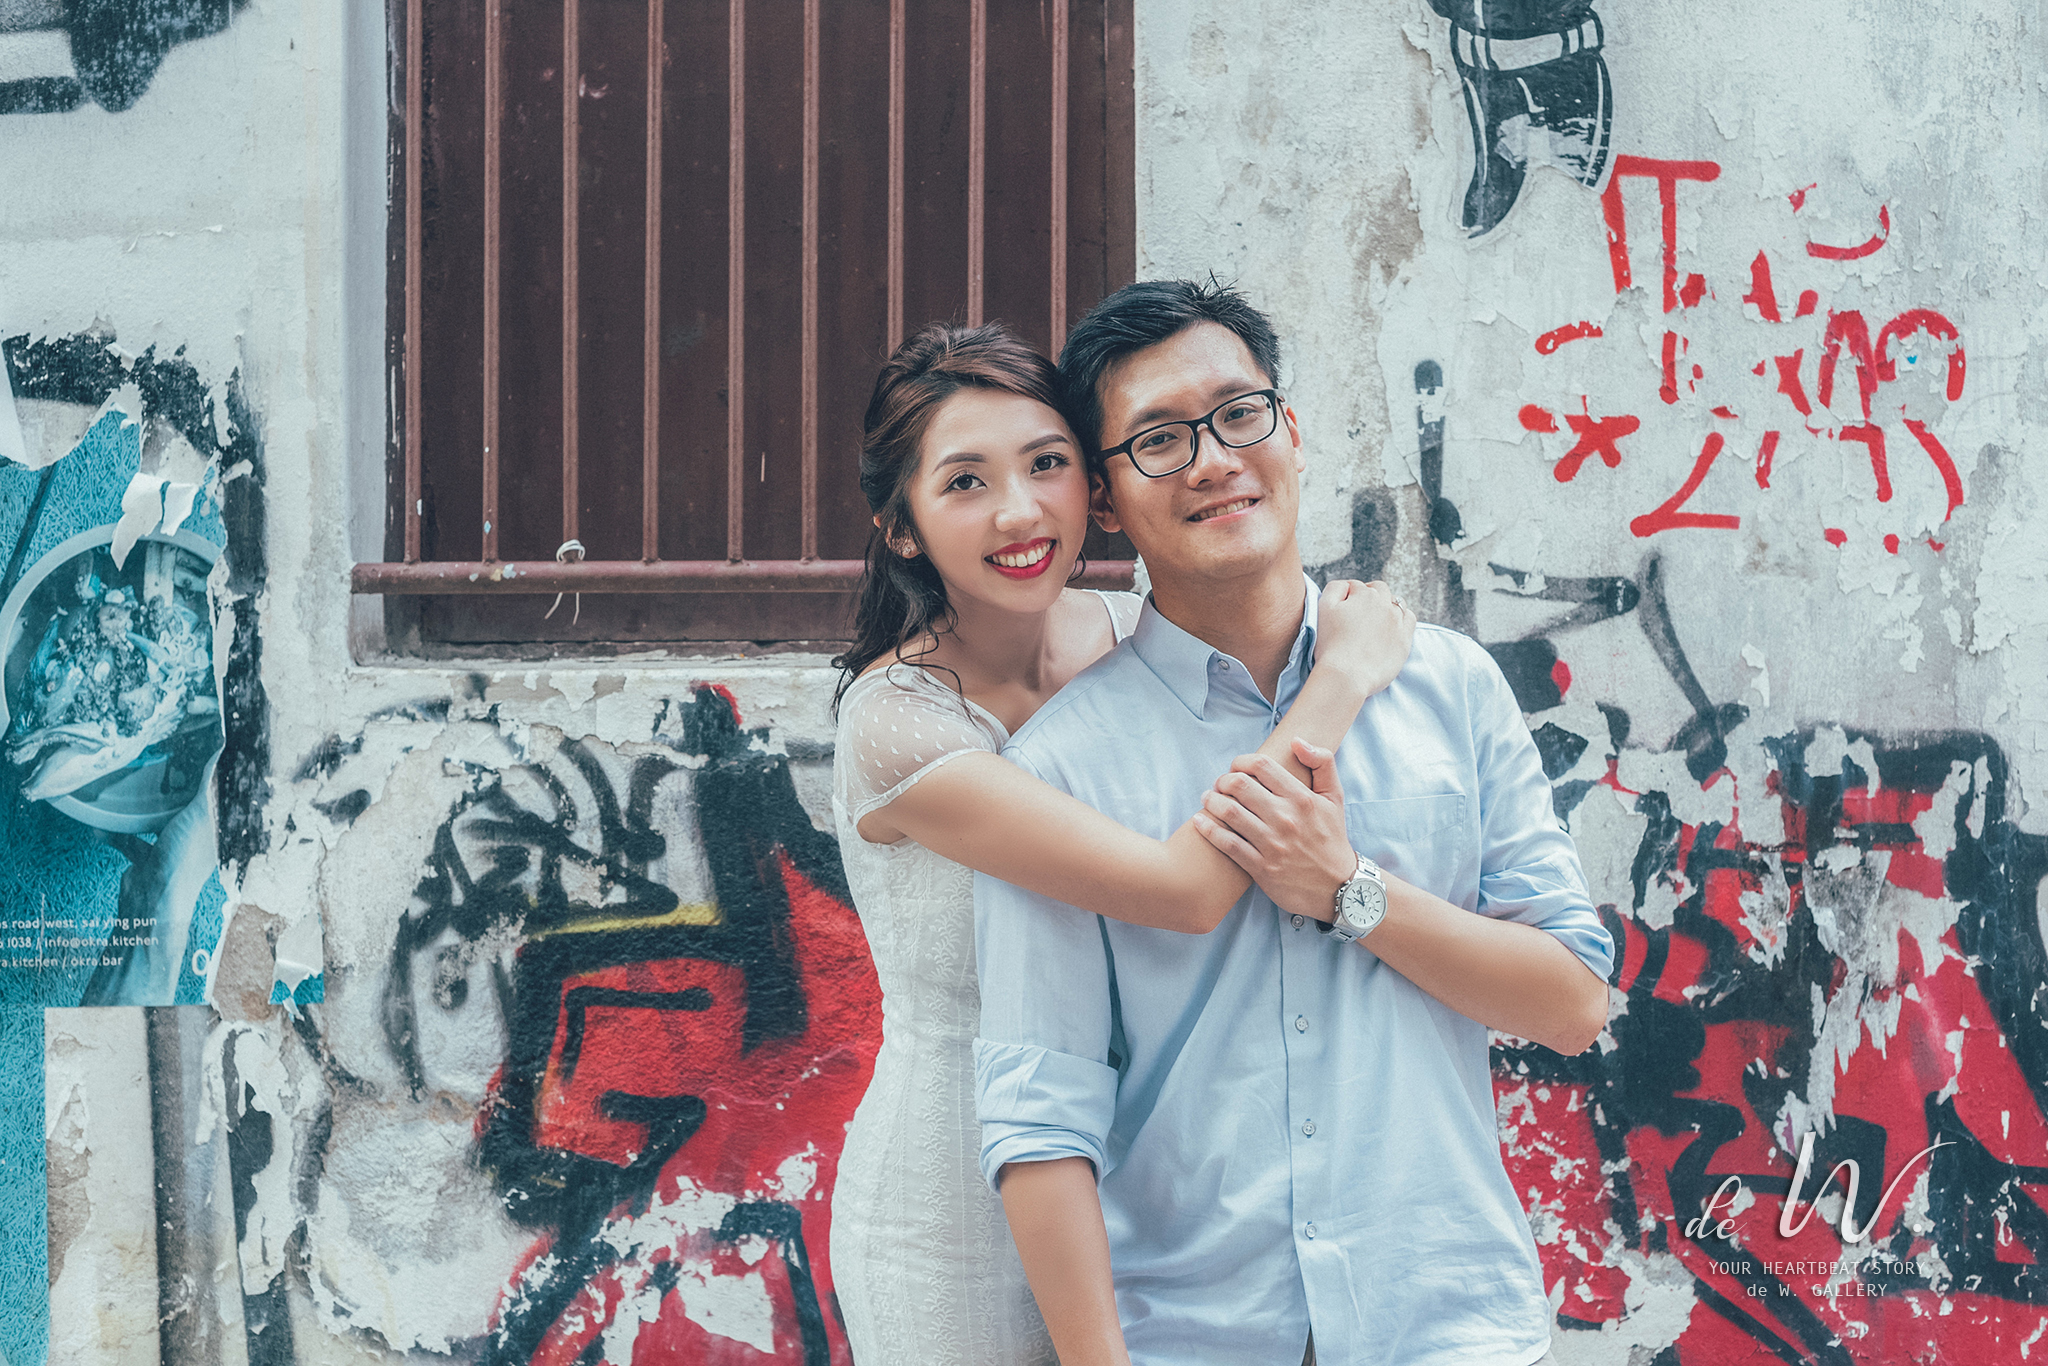 2048 de w gallery Film style hong kong 底片 拍拖 engagement vsco 故事 中環 西環 central-08